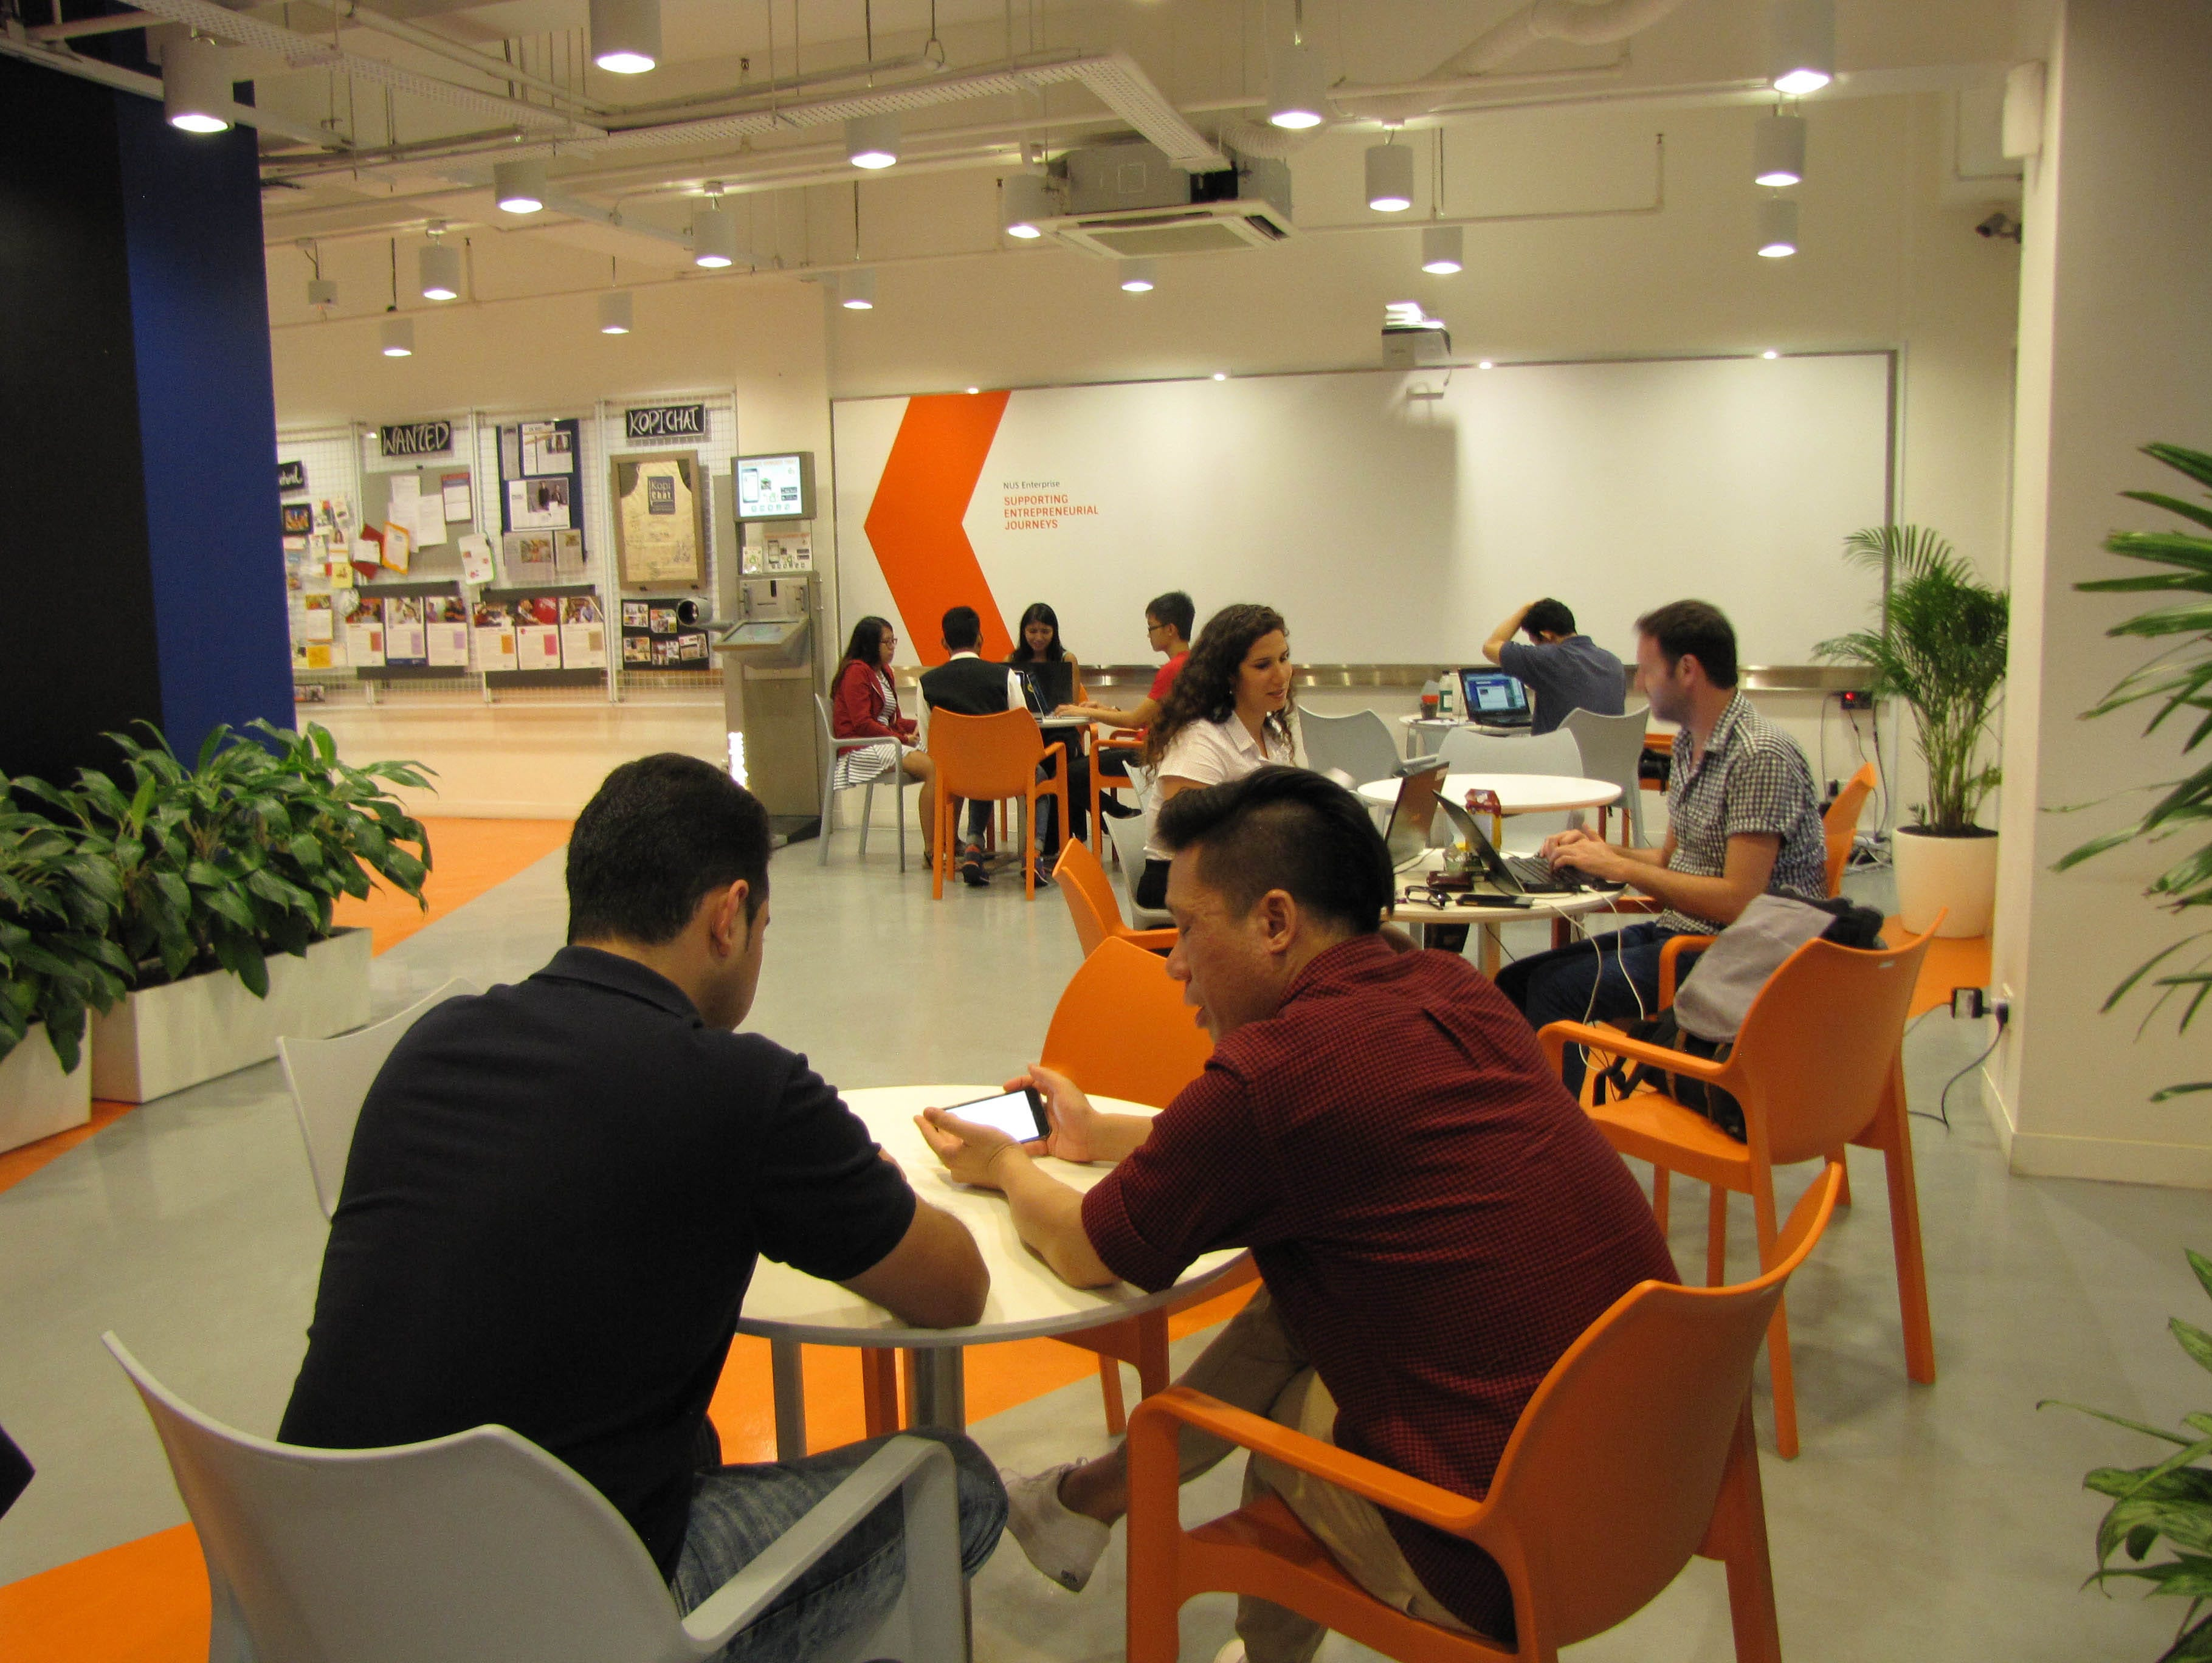 An interior workspace at Block 71, a government-backed startup incubator in Singapore